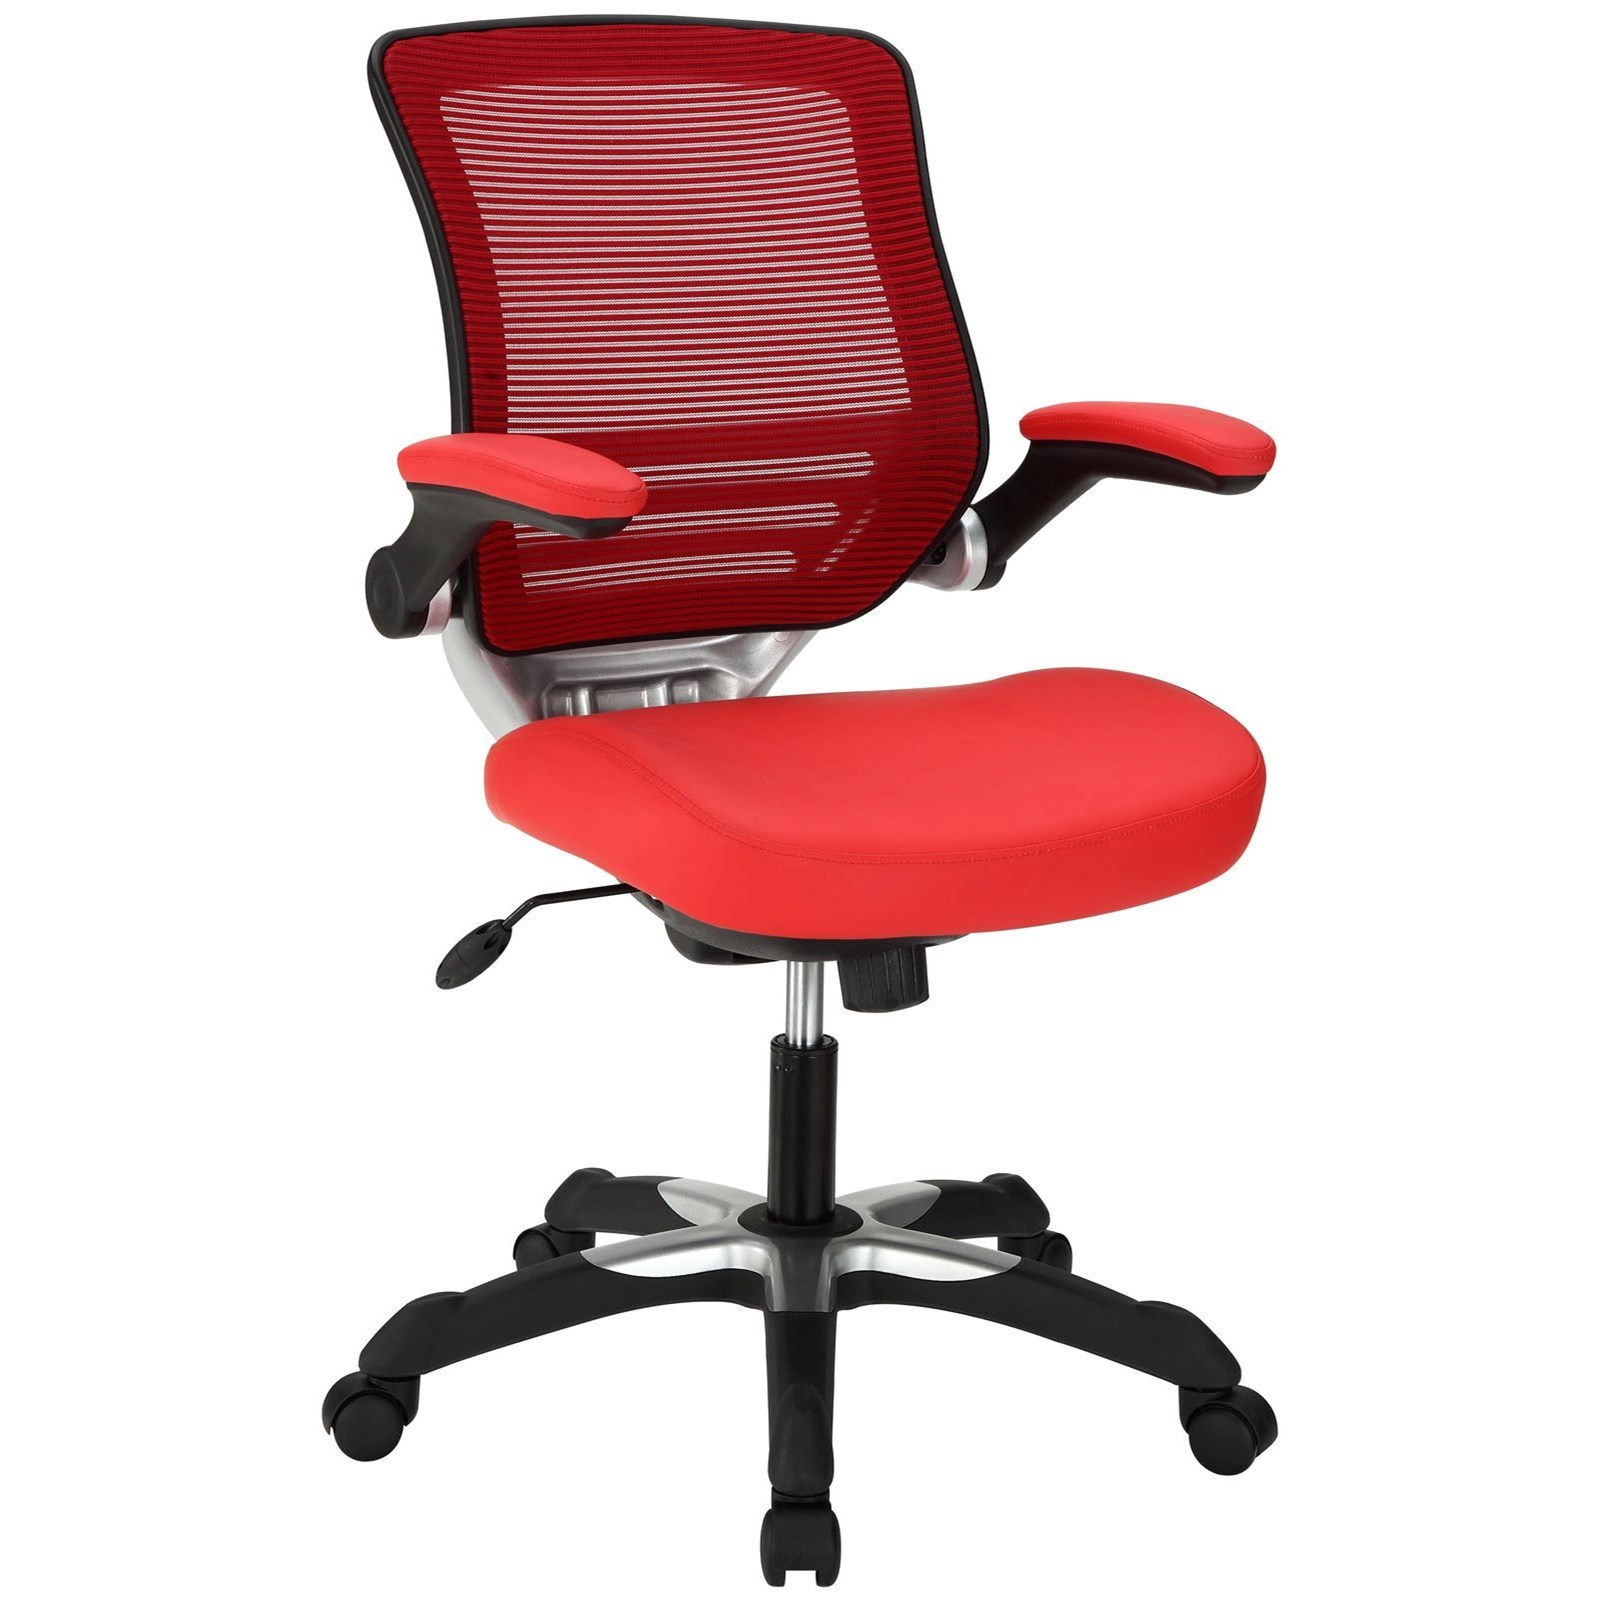 Edge Vinyl Office Chair by Modway at Value City Furniture